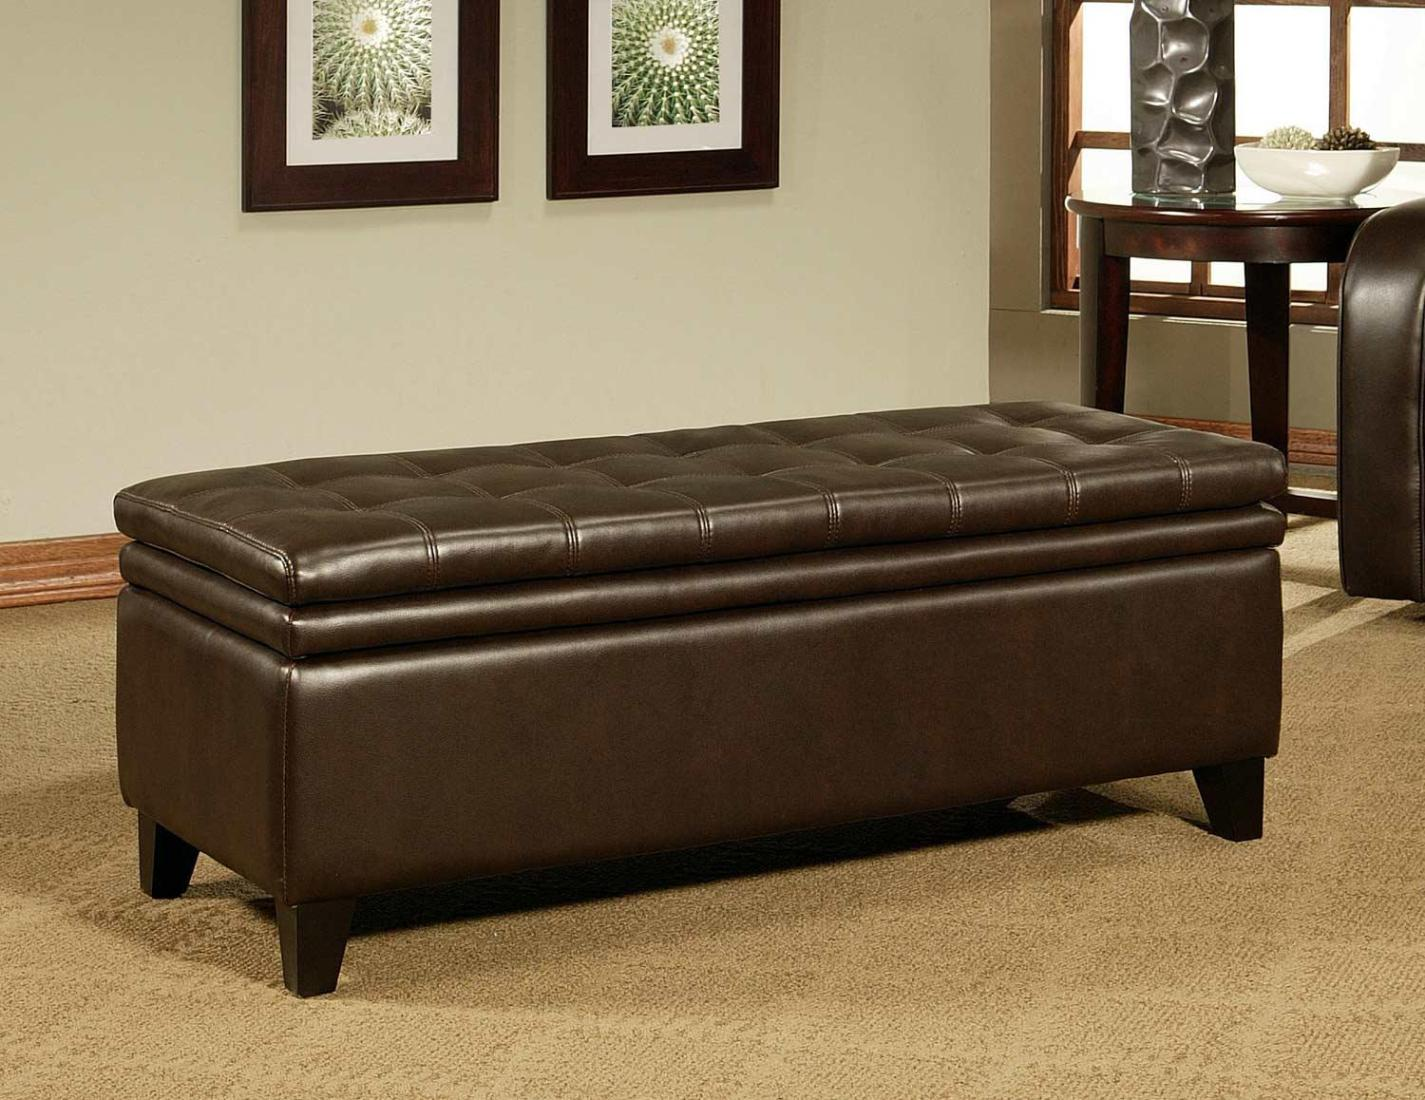 Image of: Storage Ottoman Coffee Table